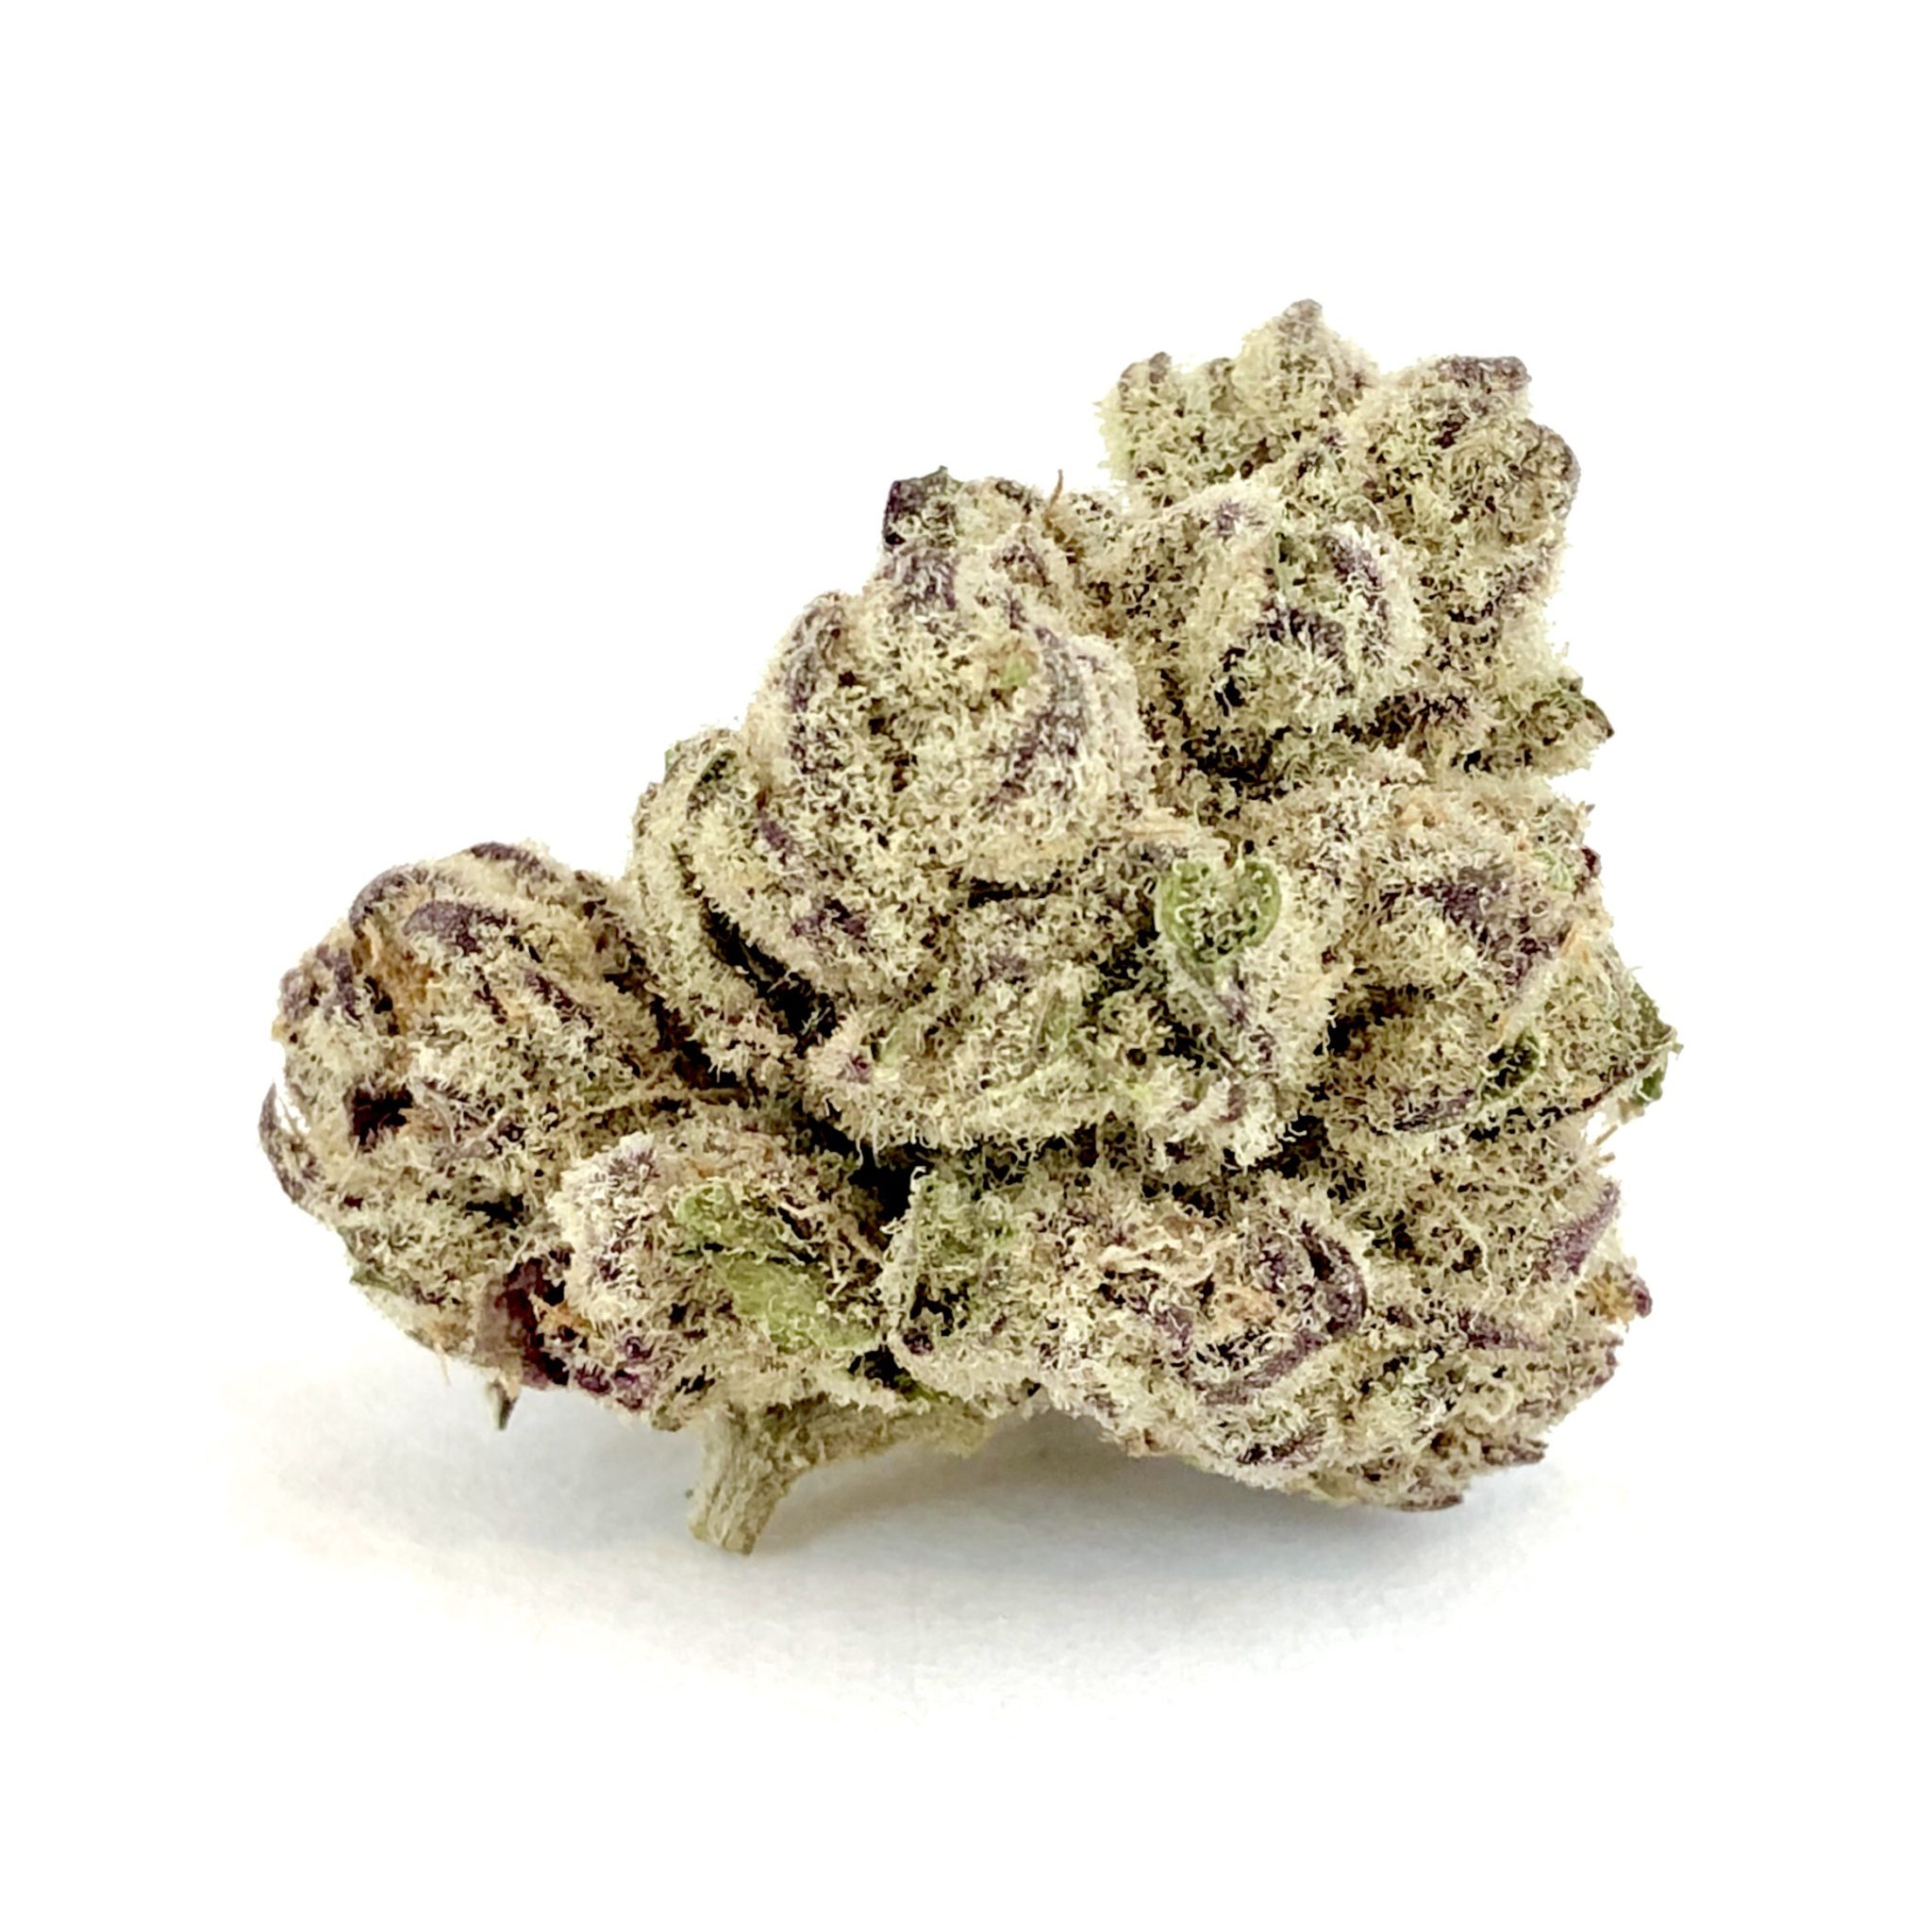 Purple Cake Batter | Indica | Hybrid | Exclusive Reserve - The Loud Line